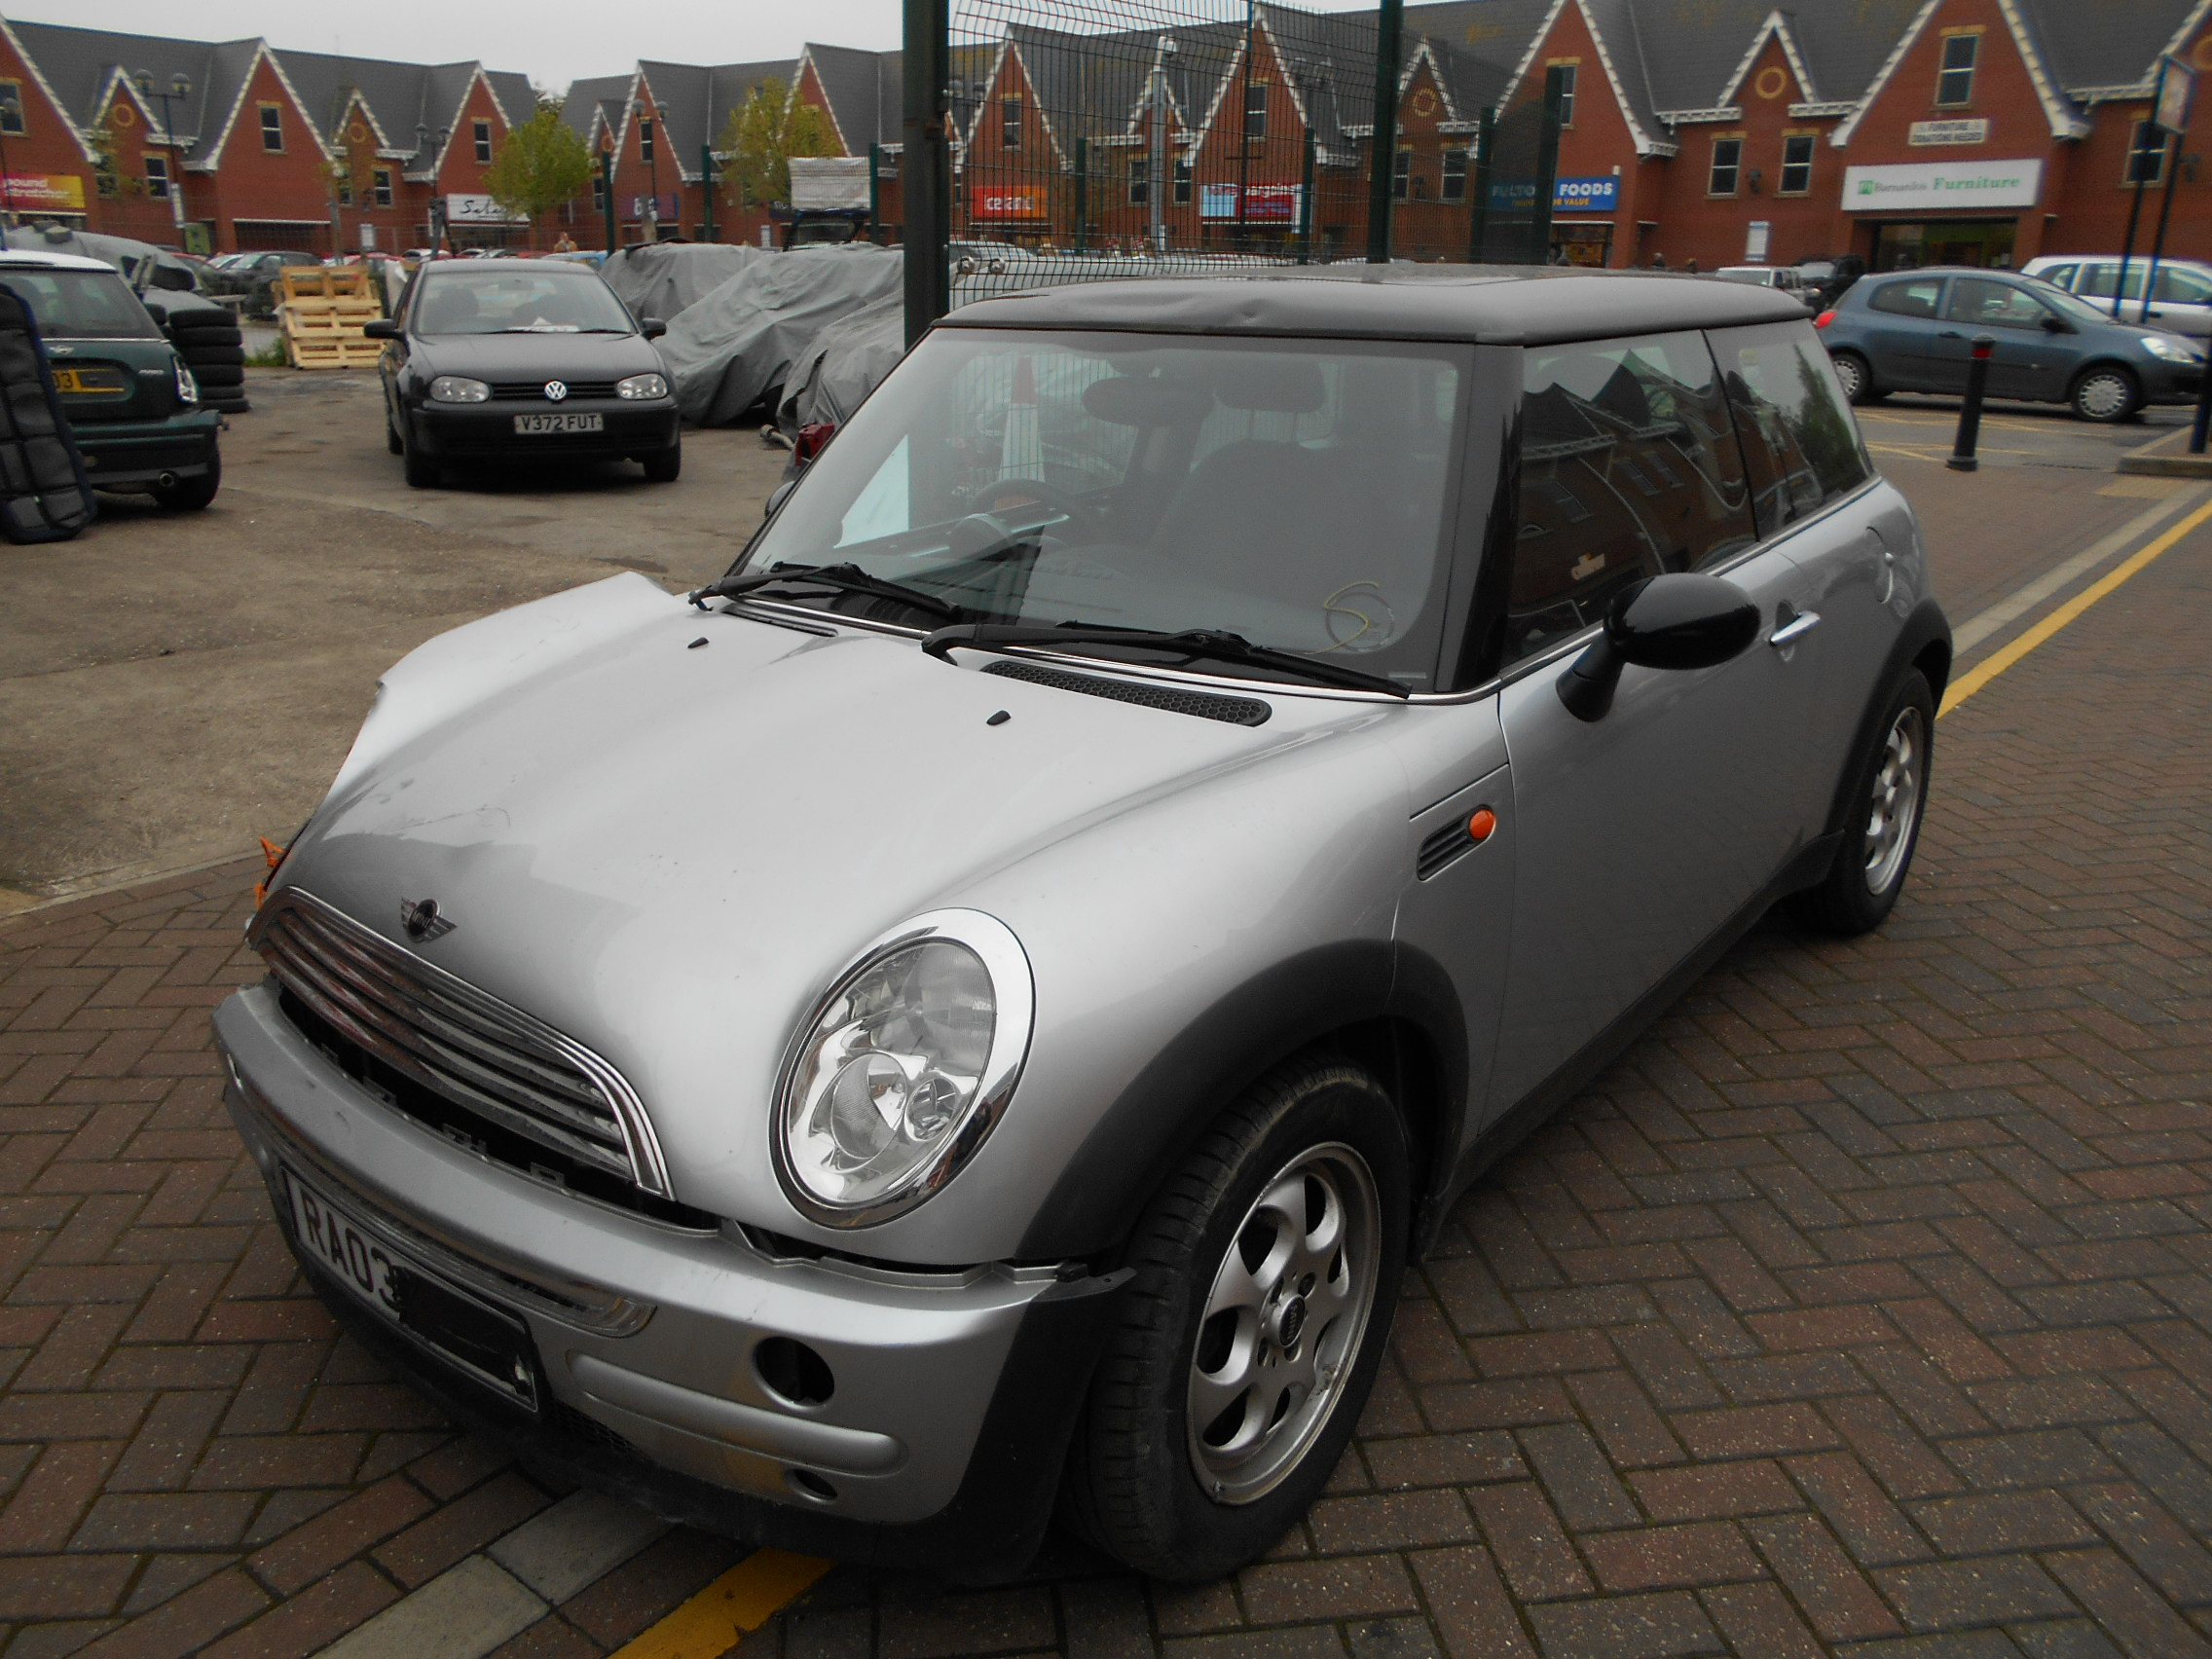 03 Silver Automatic 1.6 BMW Mini Cooper - 3